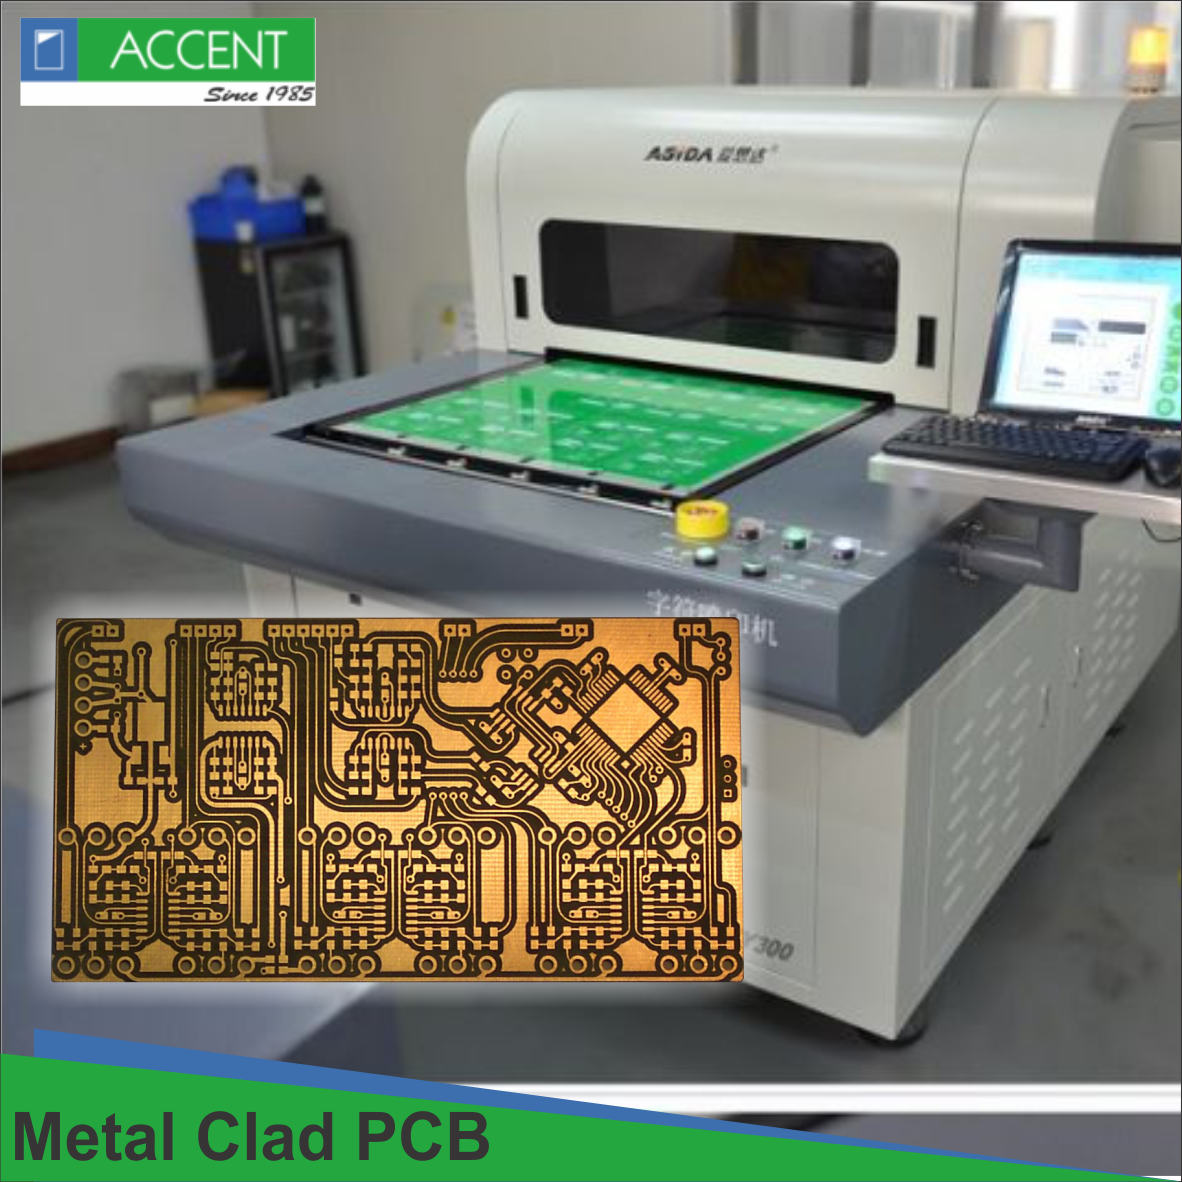 Metal Clad Pcb Designs From Accent Fixtures Offer More Application Use In A Variety Of Led Devices From Industrial To Automotive App Pcb Design Fixtures Design